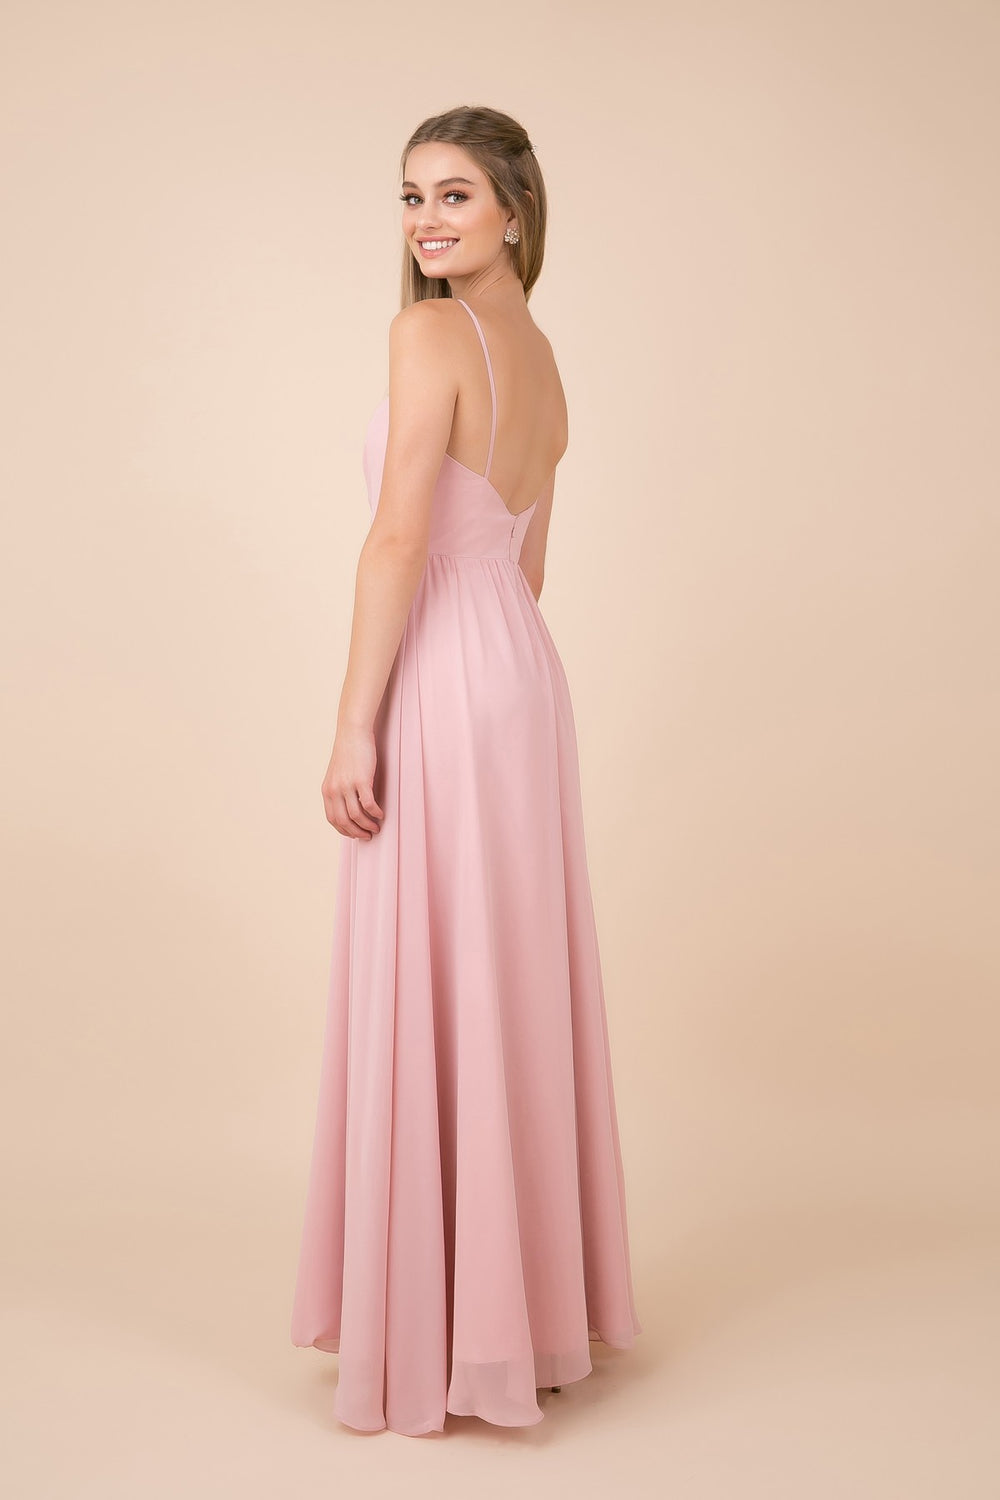 V-NECK LONG CHIFFON SLIP SKIRT BRIDESMAID DRESS_R275 BY NARIANNA